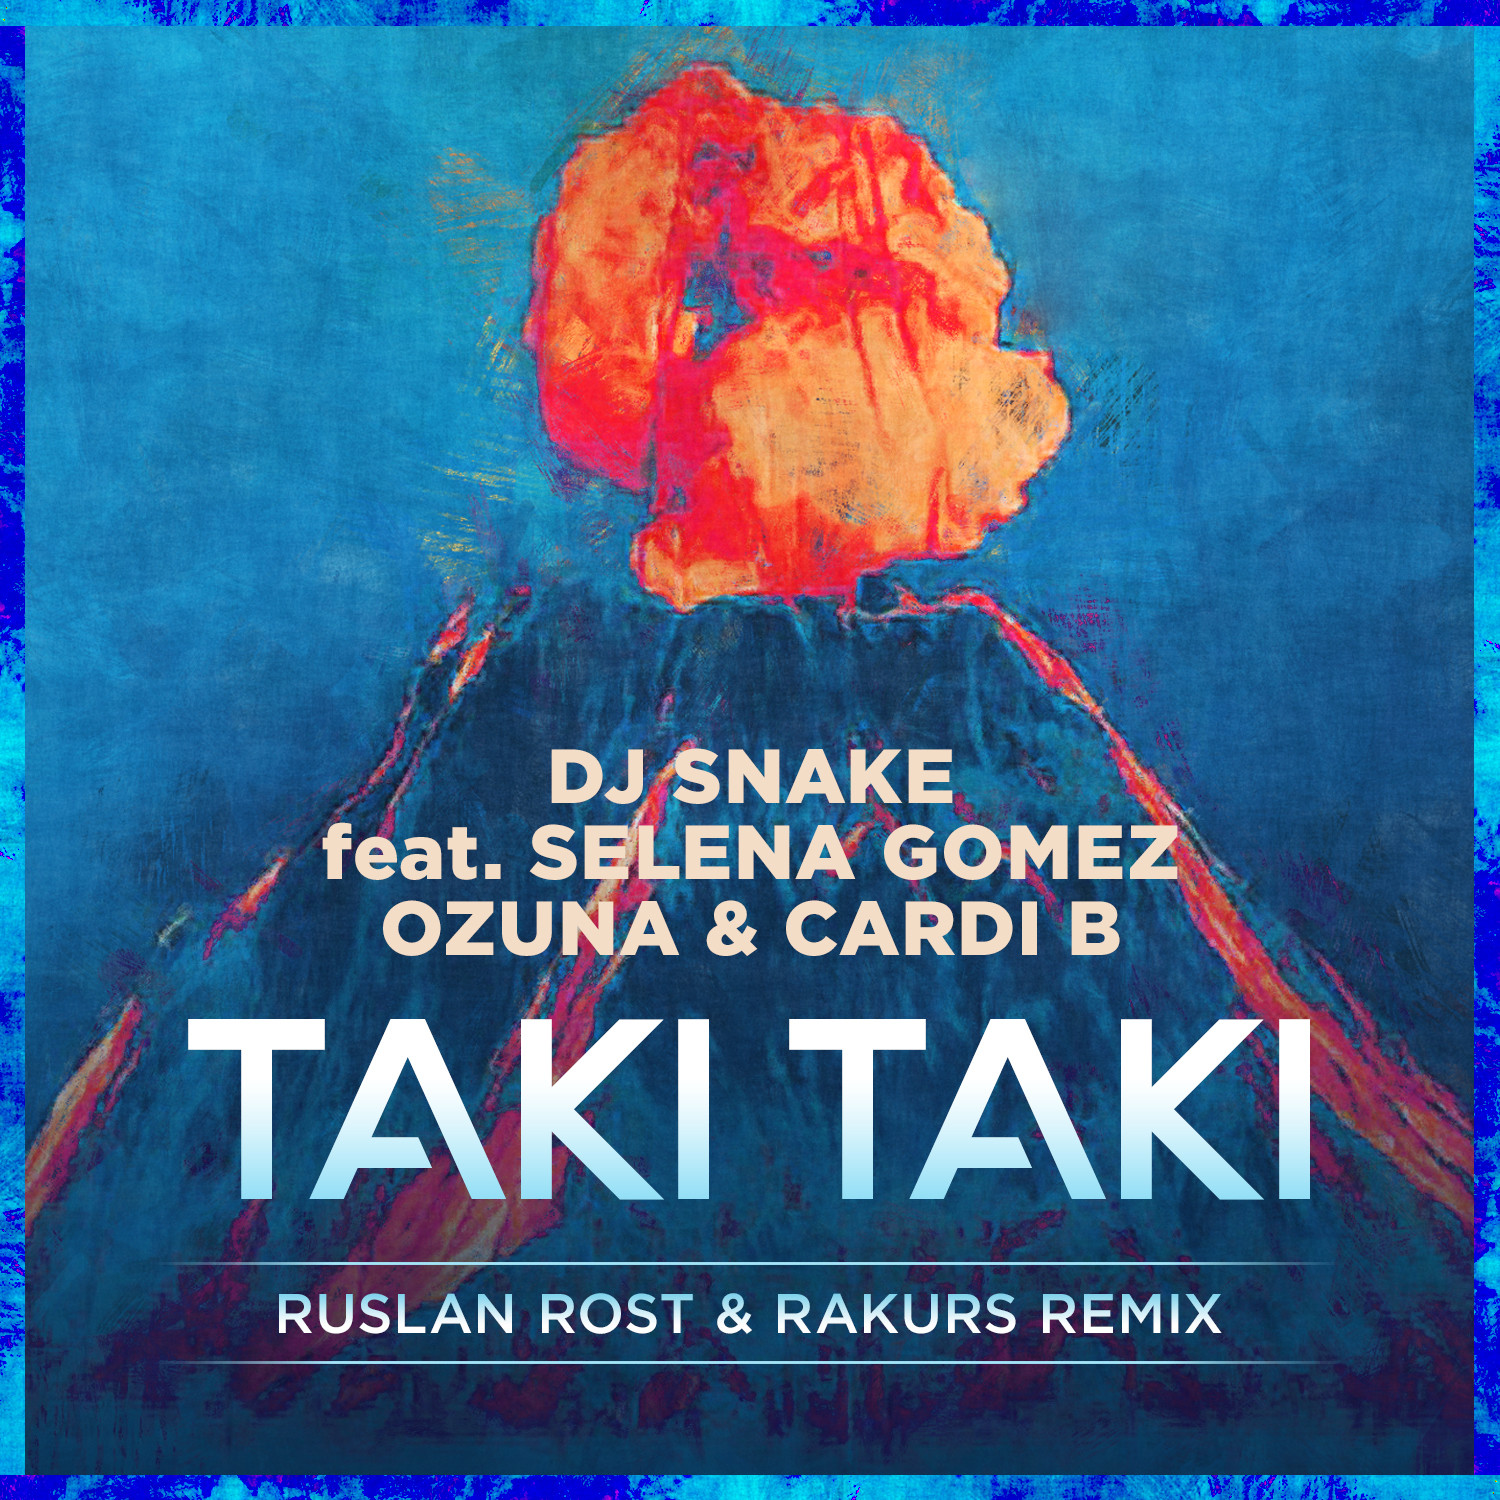 Taki Taki Full Song Downloadbin Mp3: Dj Snake Feat. Selena Gomez, Ozuna & Cardi B